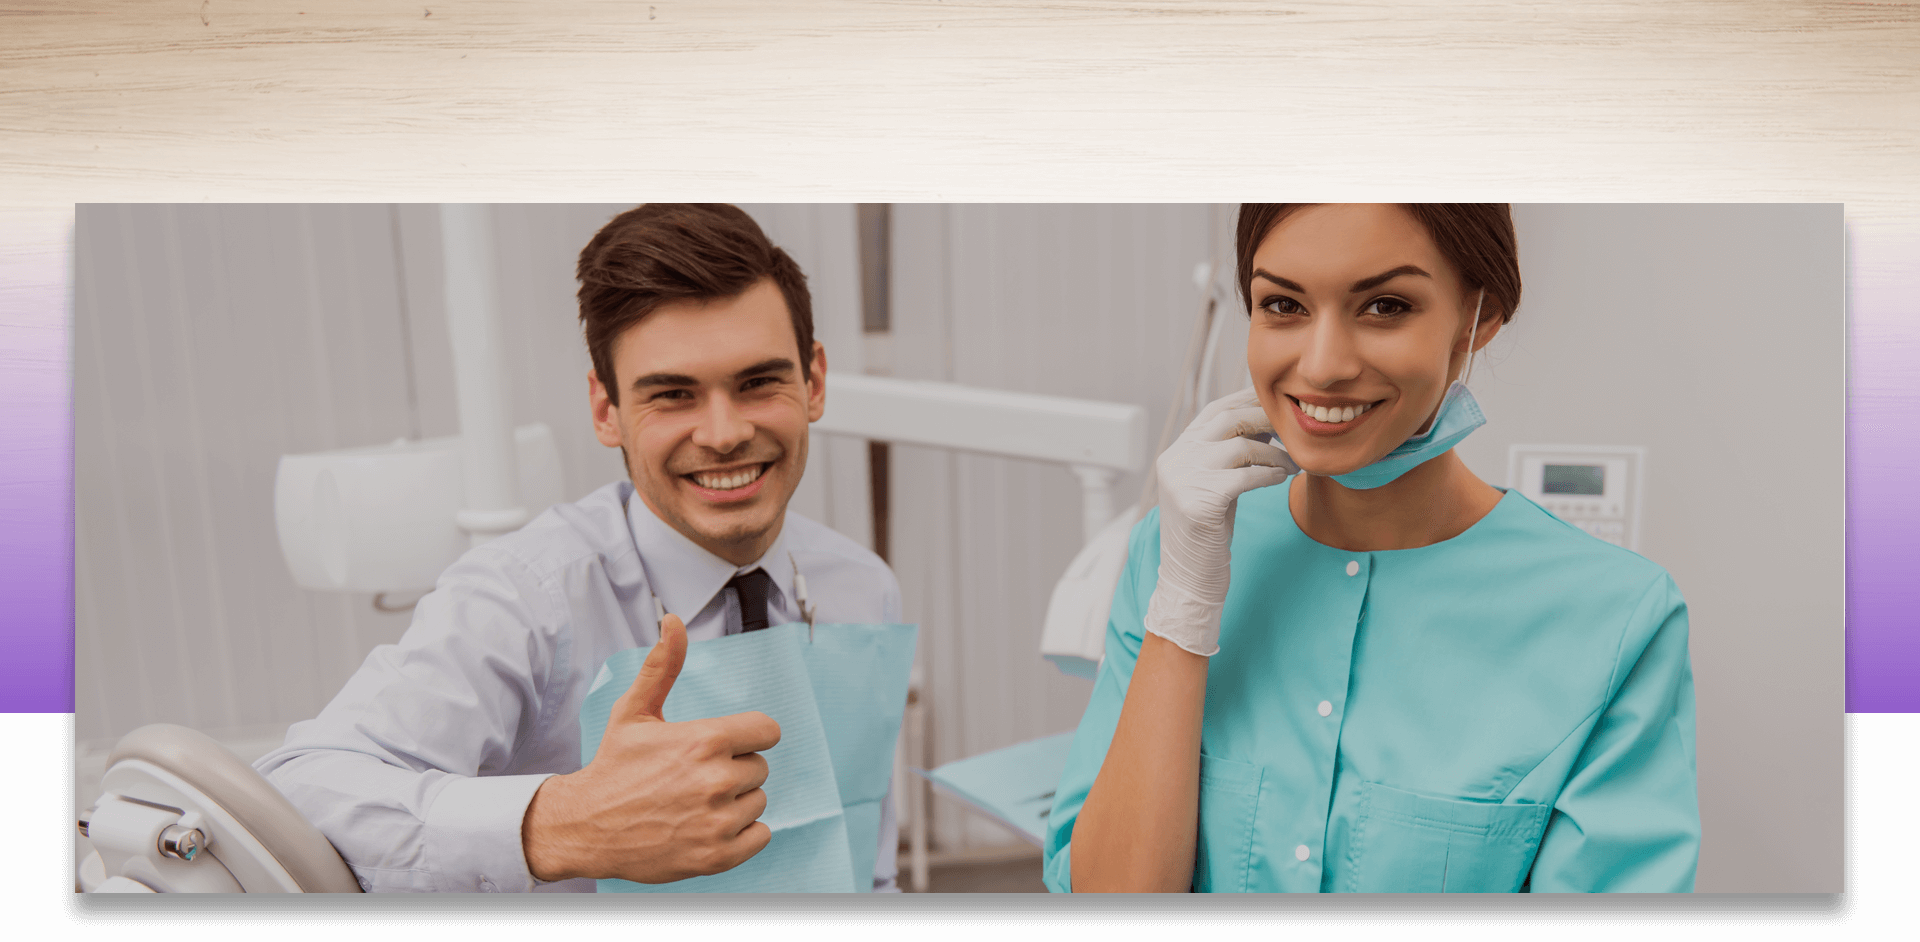 Dentist smiling and showing thumbs up while assistant smiling looking at the camera